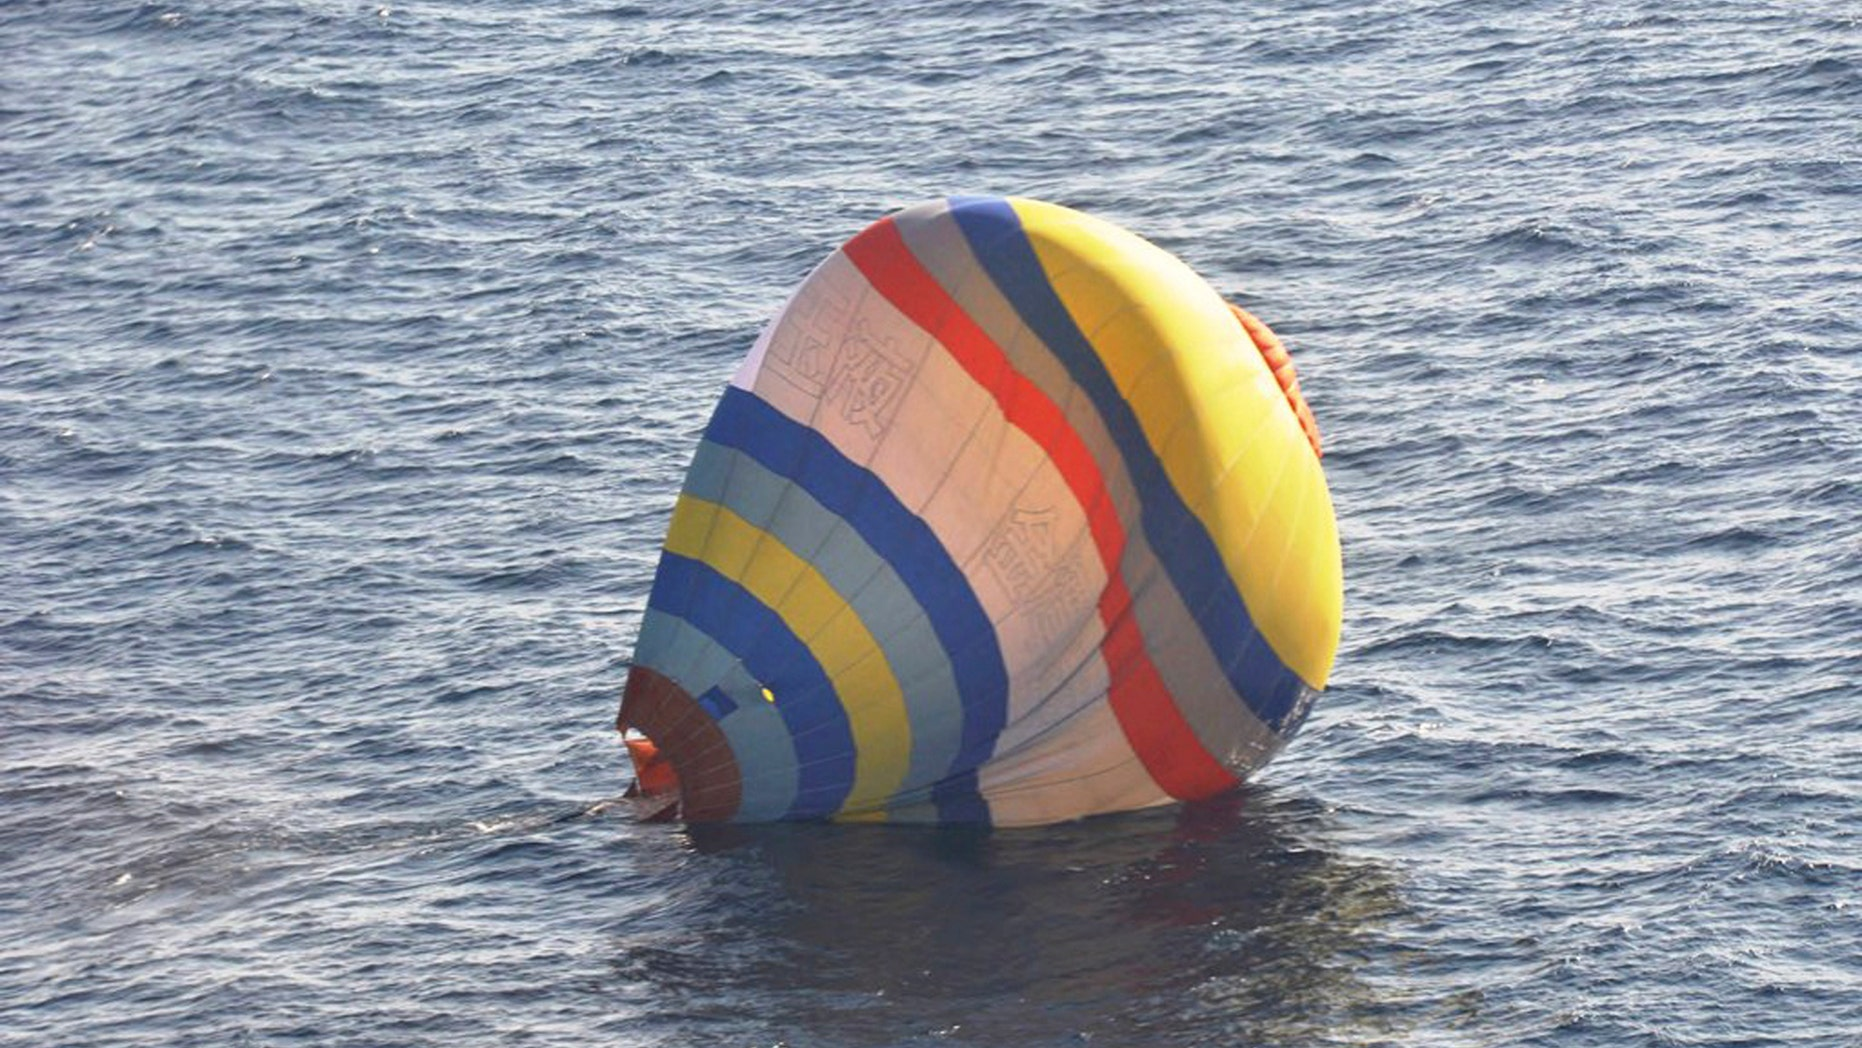 This Wednesday, Jan. 1, 2013 photo released by  Japan's 11th Regional Coast Guard shows a hot-air balloon in which the Coast Guard says a  Chinese cook took a ride, in waters near the East China Sea islands called Senkaku by Japan and Diaoyu by China. Xu Shuaijun, 35, crashed Wednesday after hitting turbulence as he approached the islands claimed by both China and Japan has been rescued by Japan's Coast Guard after crashing into the sea. (AP Photo/Japan's 11th Regional Coast Guard)